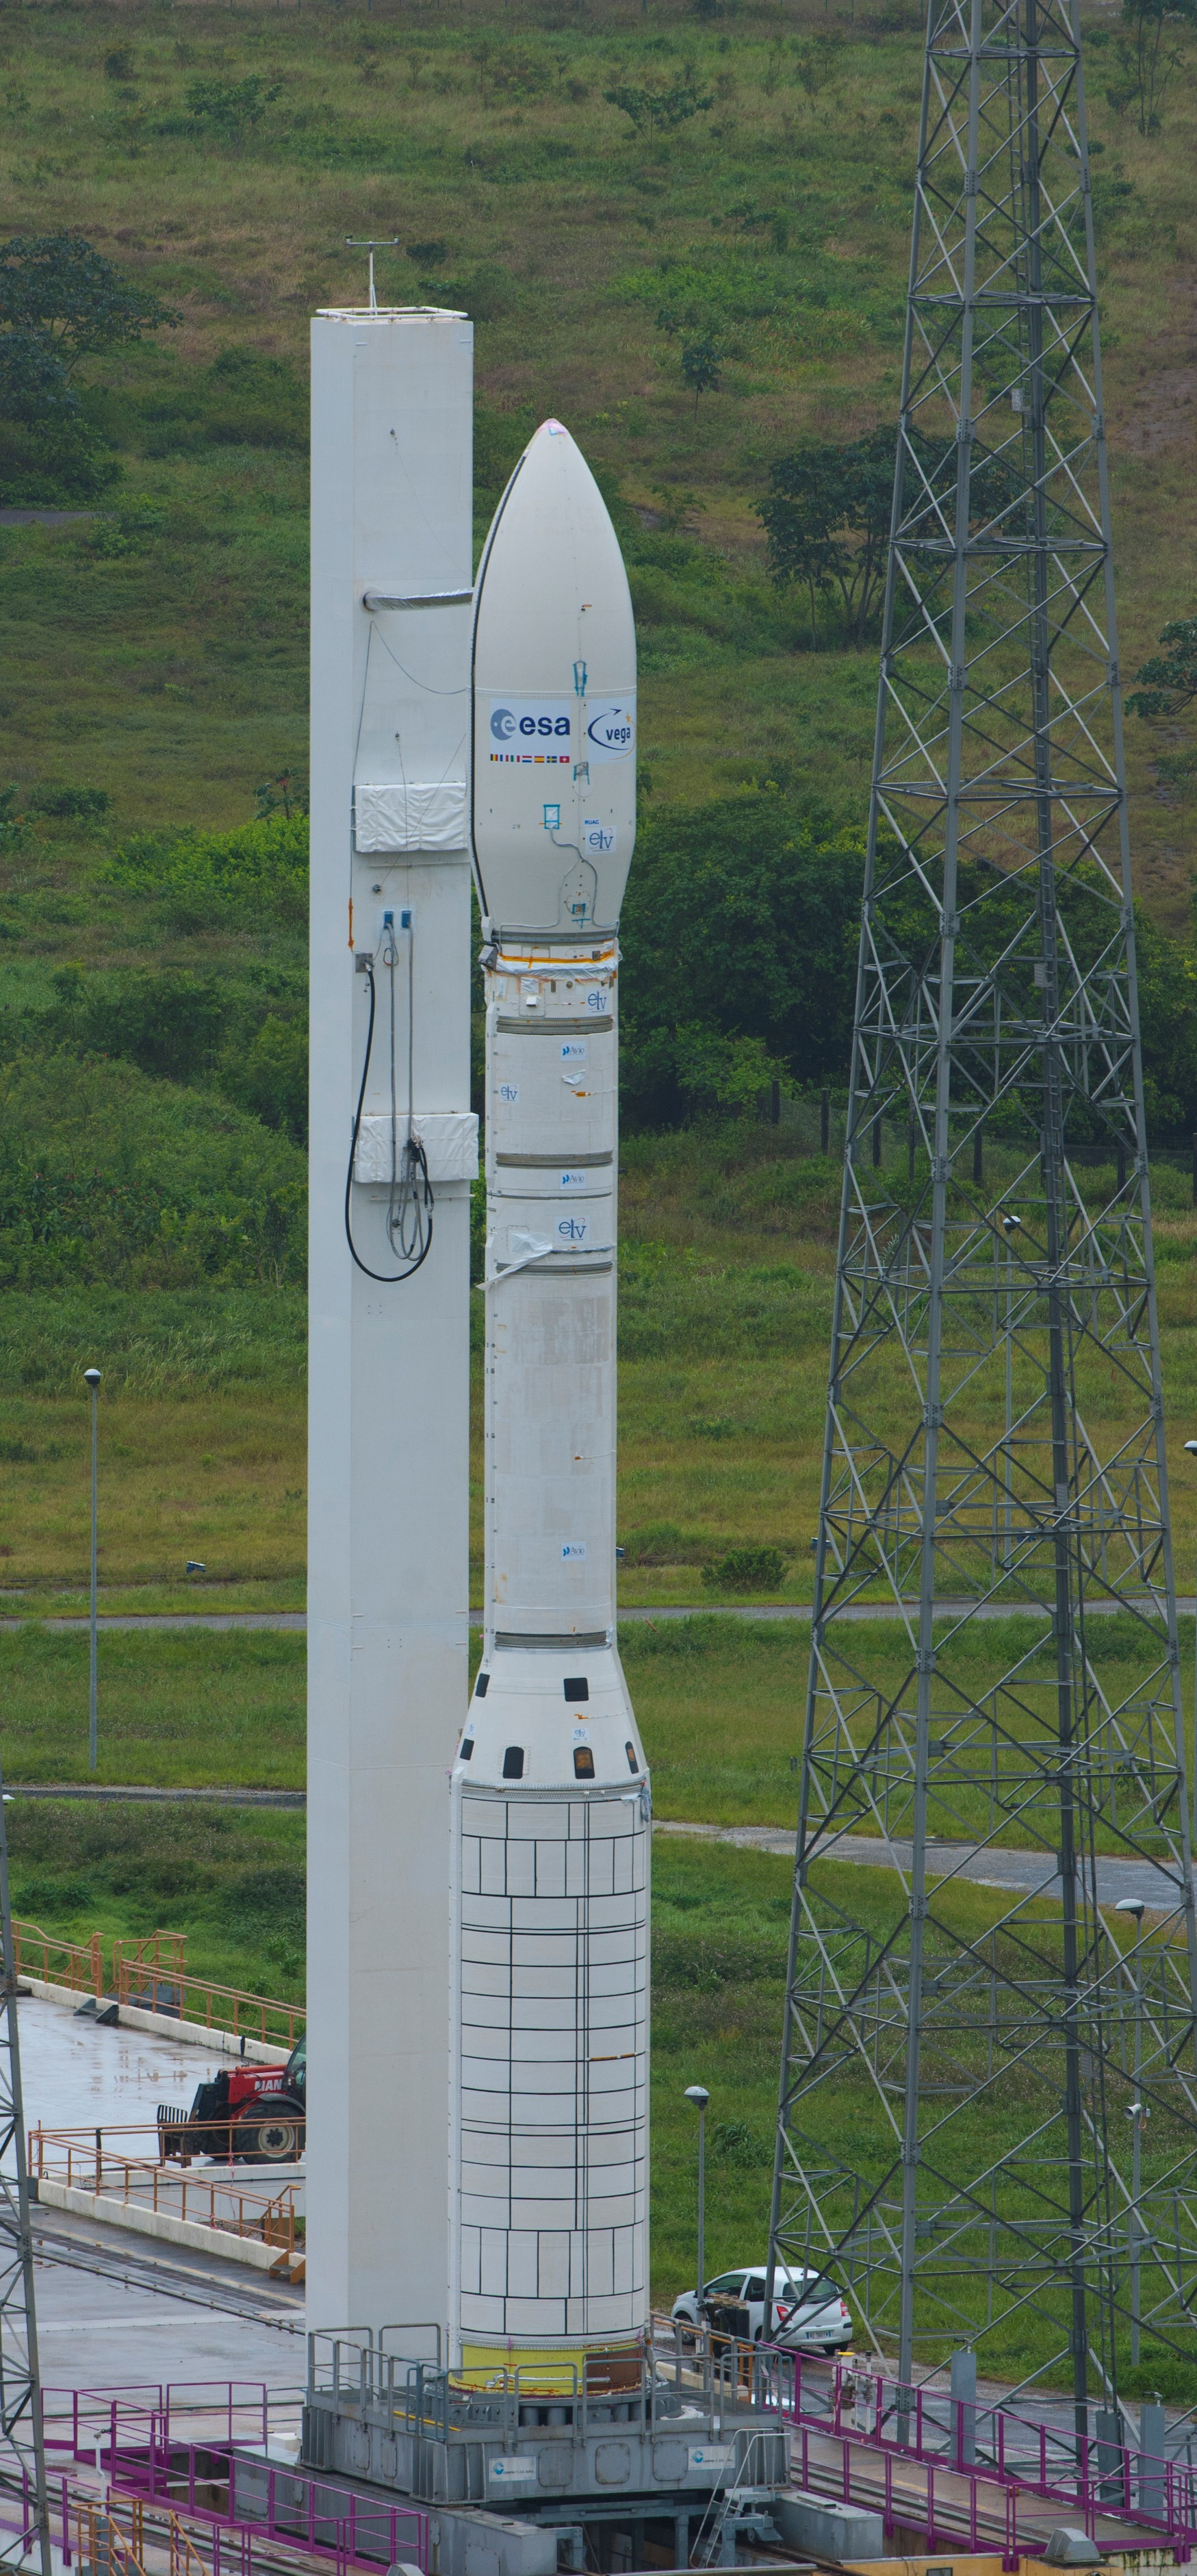 Maiden flight for ESA's Vega rocket tonight